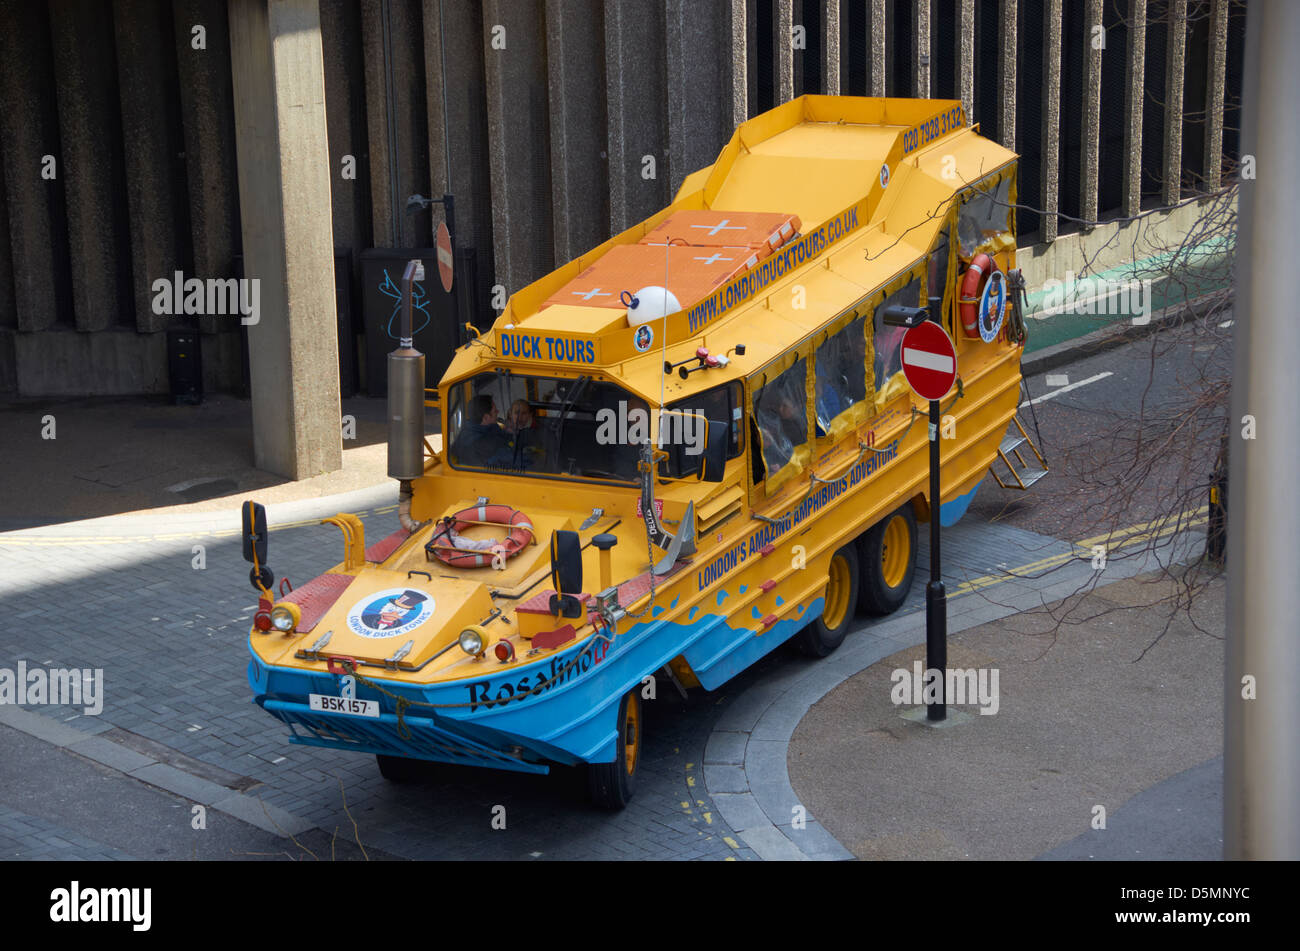 Sightseeing amphibious vehicle (duck boat) in London. - Stock Image